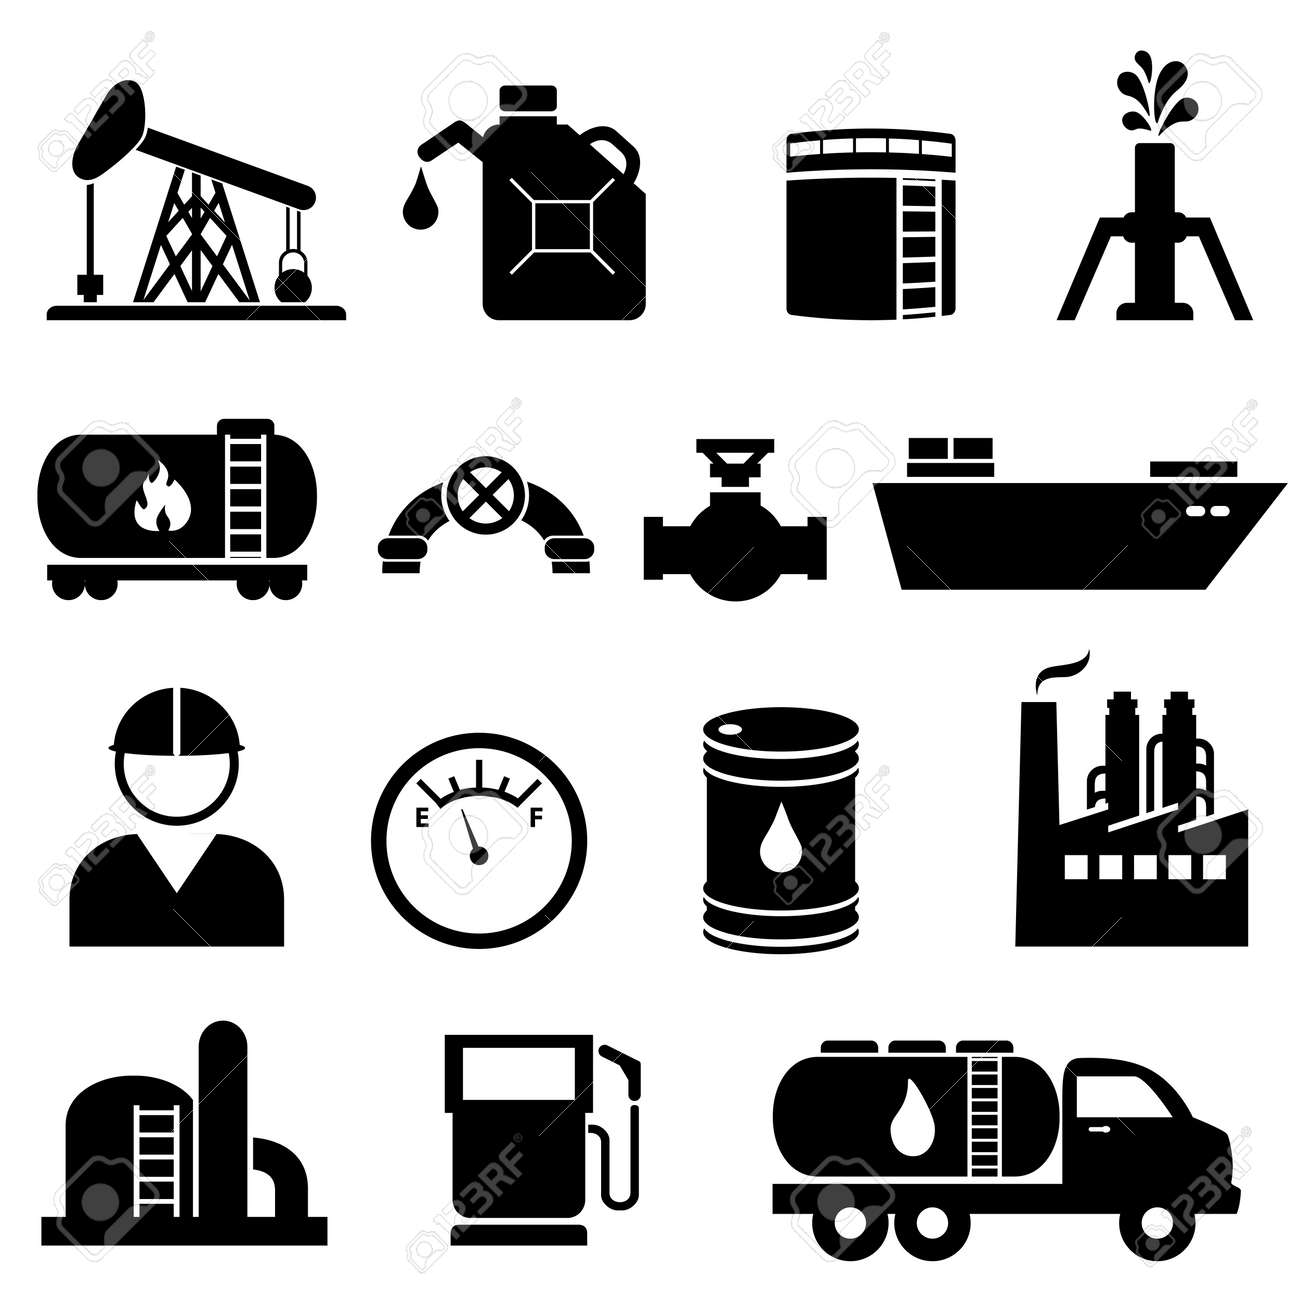 Oil and petroleum icon set in black - 20615874